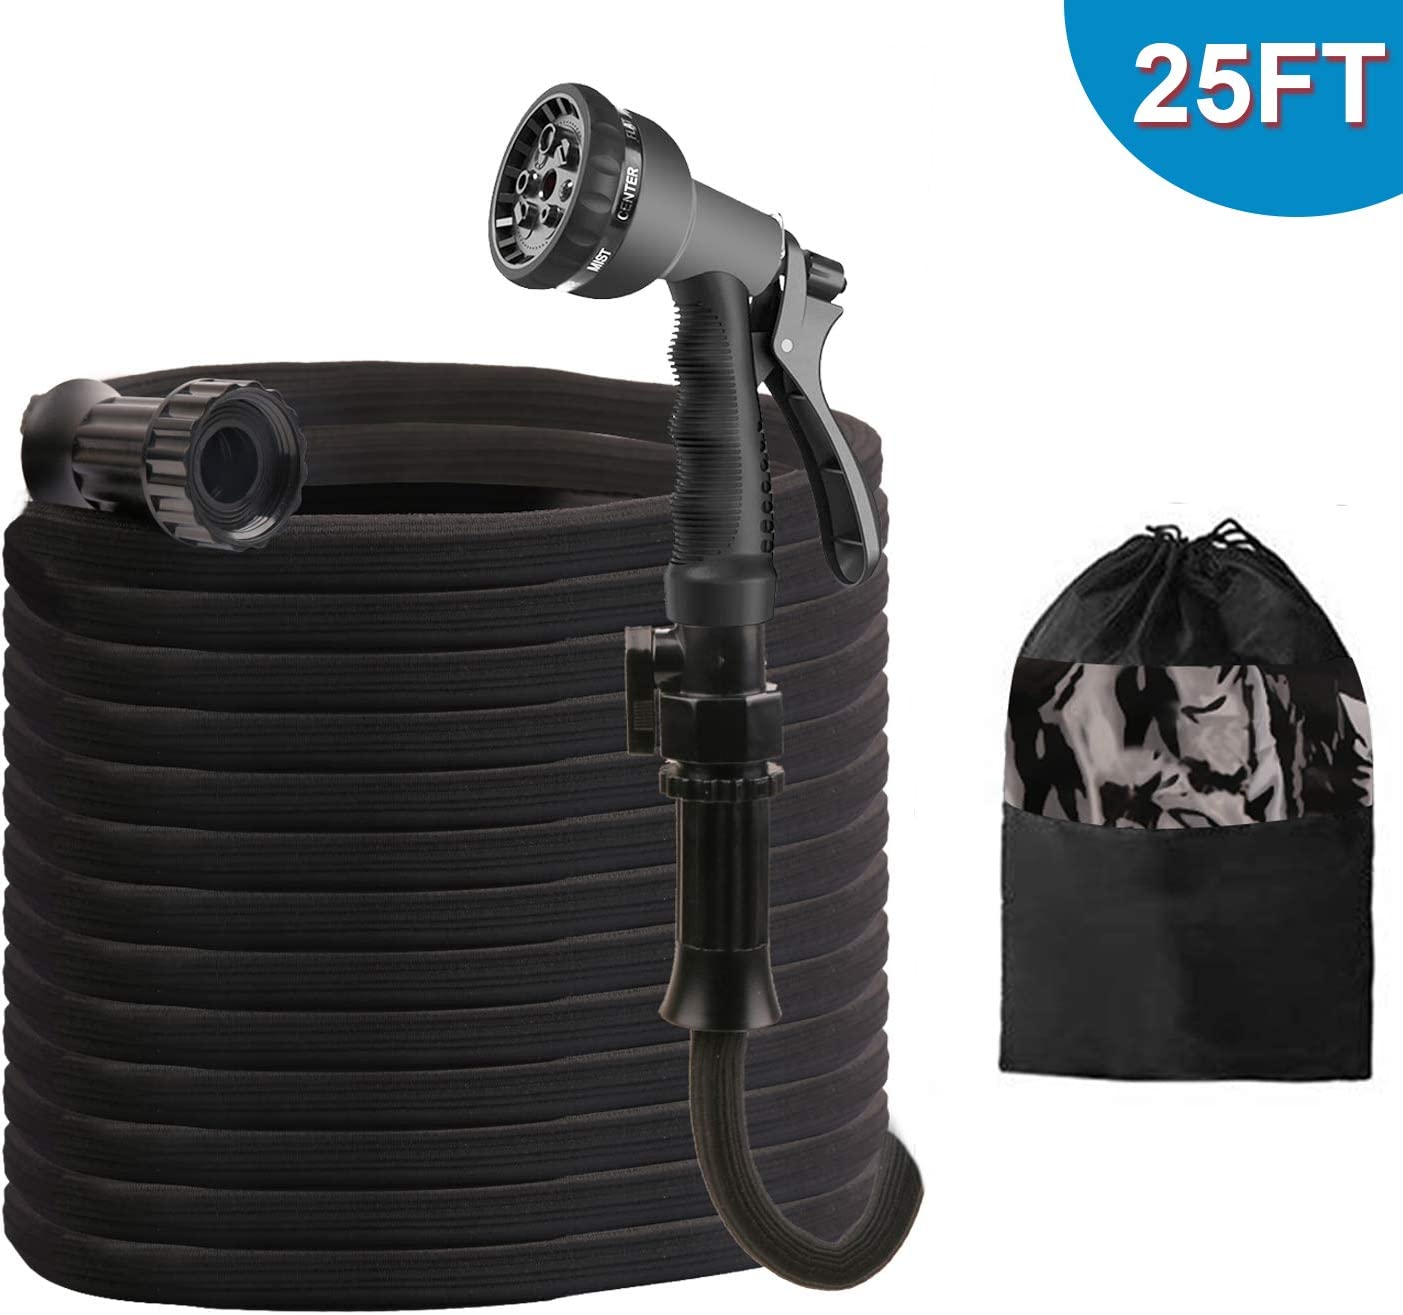 ActionEliters Expandable Garden Hose, Flexible Water Hose 8 Functions Hose Nozzles with Lightweight Triple Latex Core and Advanced Strength Fabric Protection for Outdoor Gardening (25ft, Black)